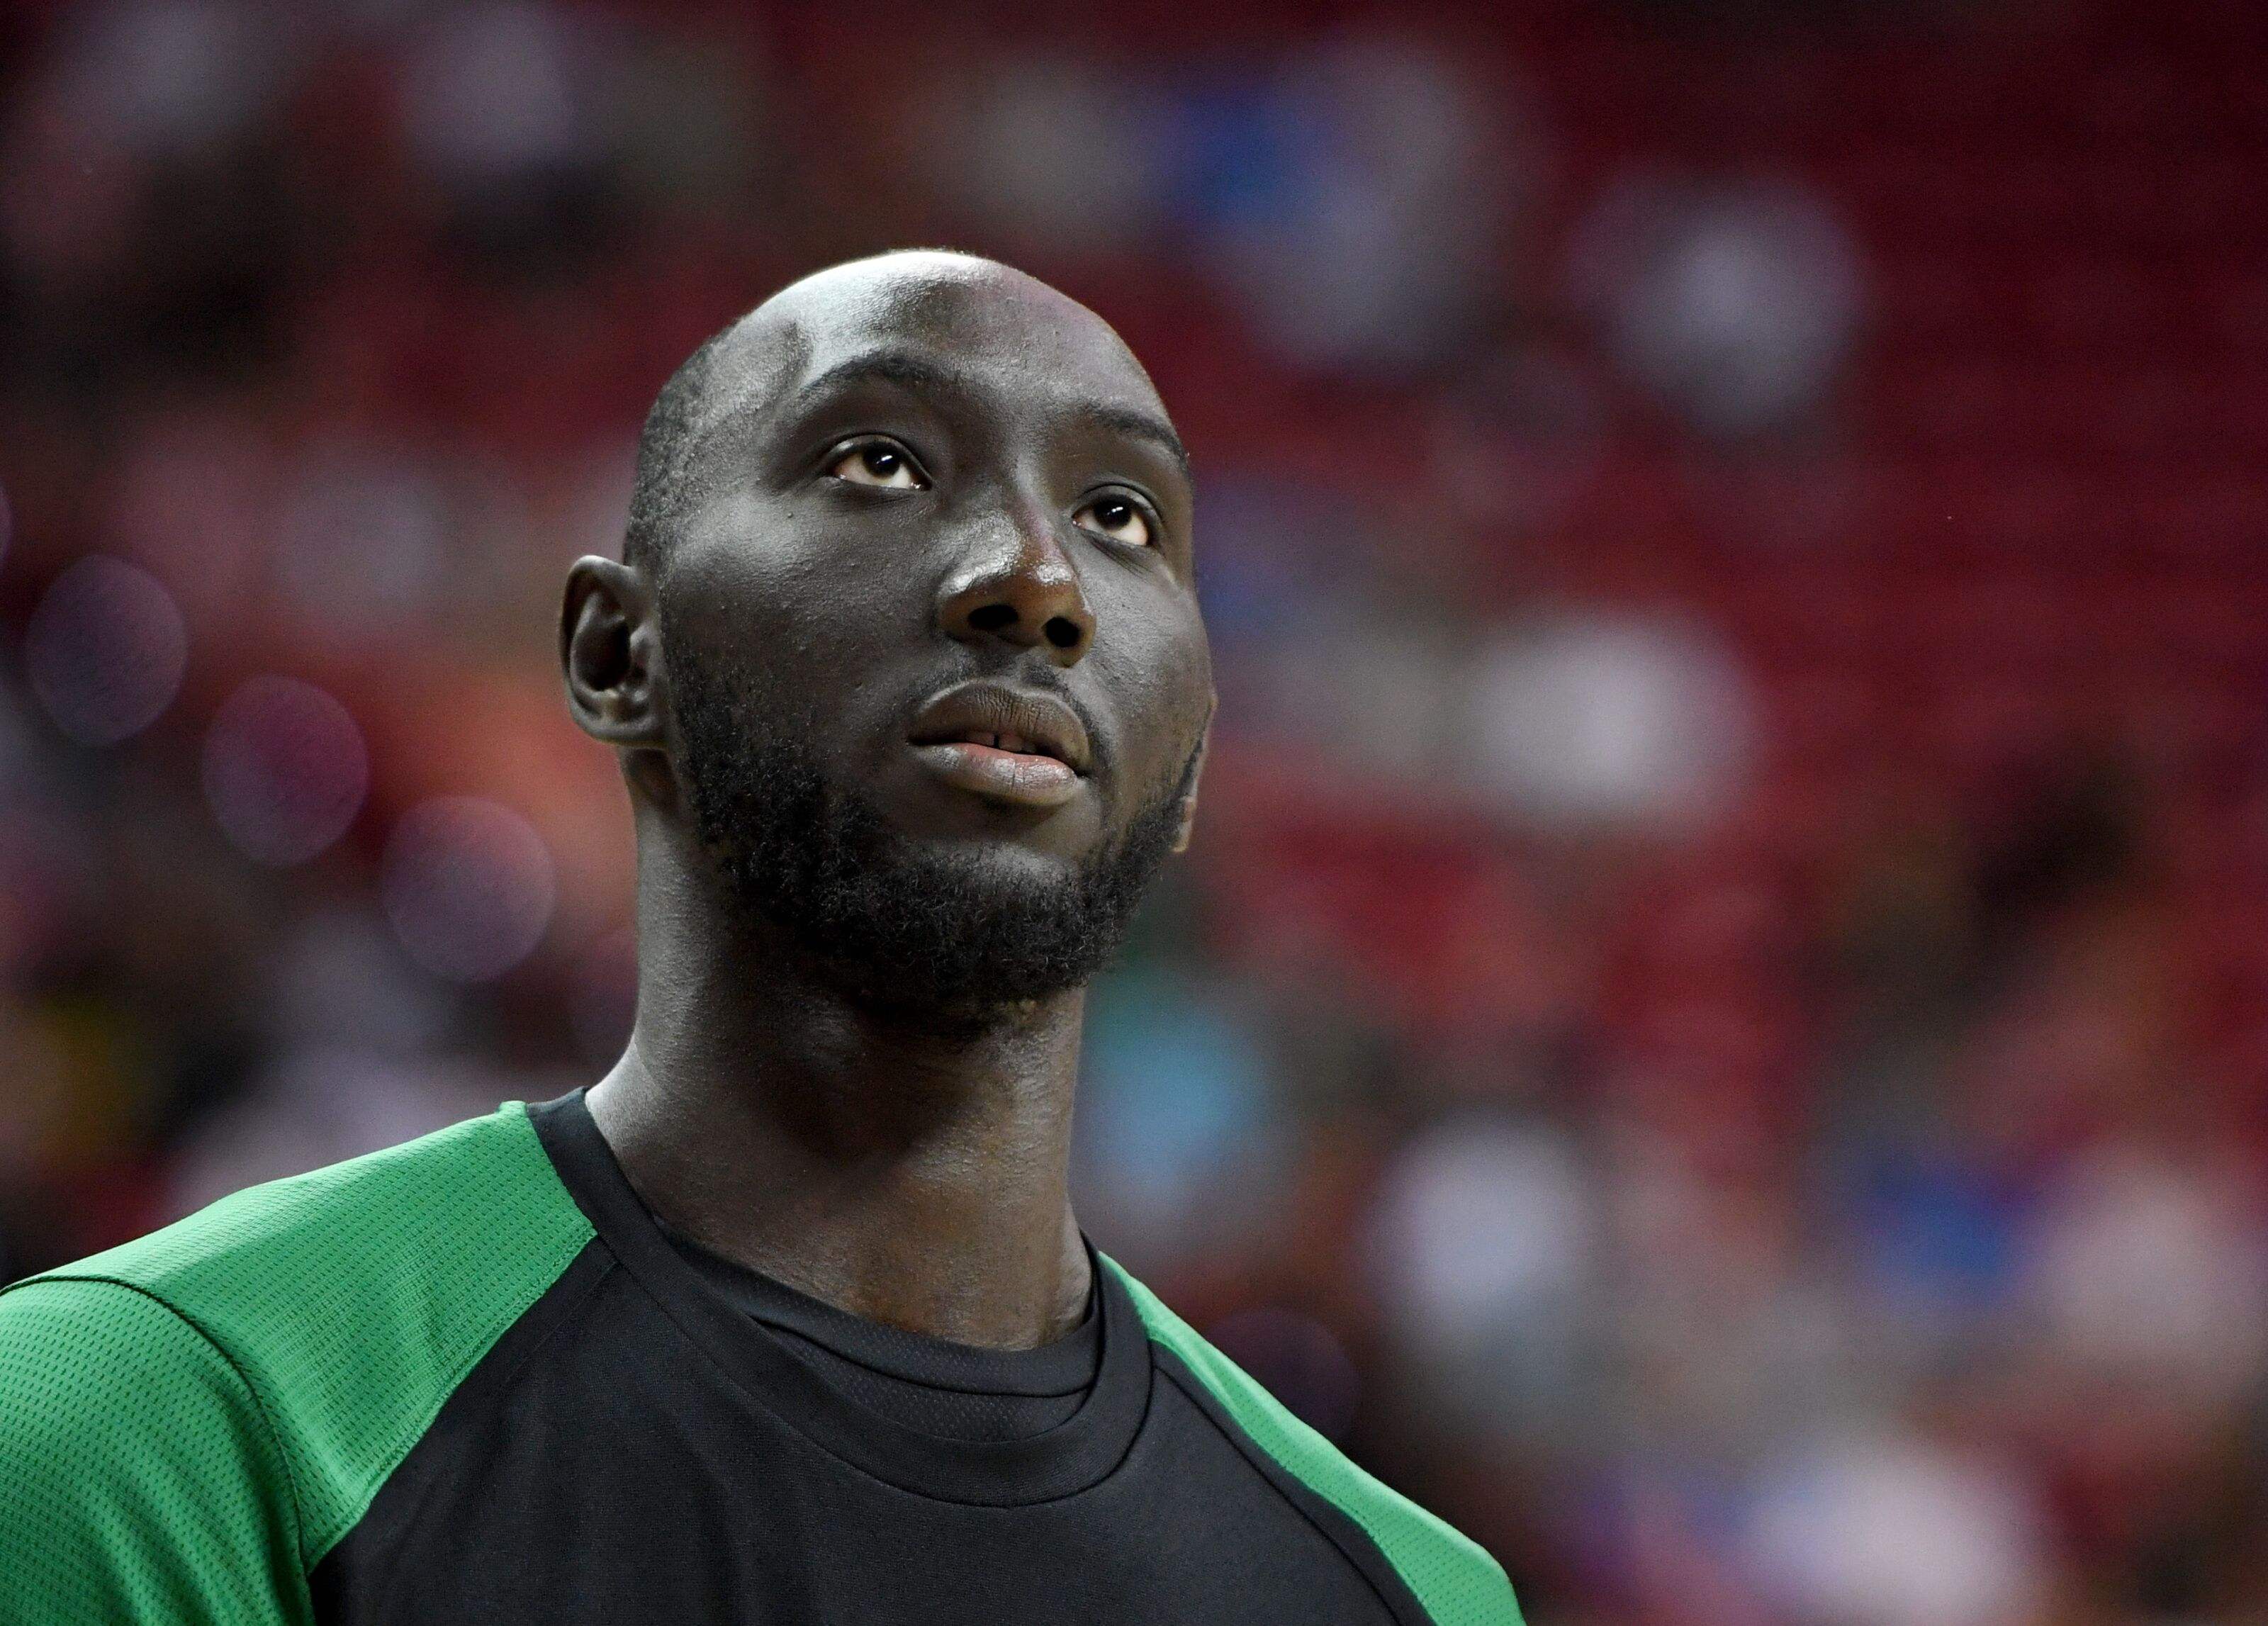 The stage is set for Tacko Fall to make the Boston Celtics final 15 man roster